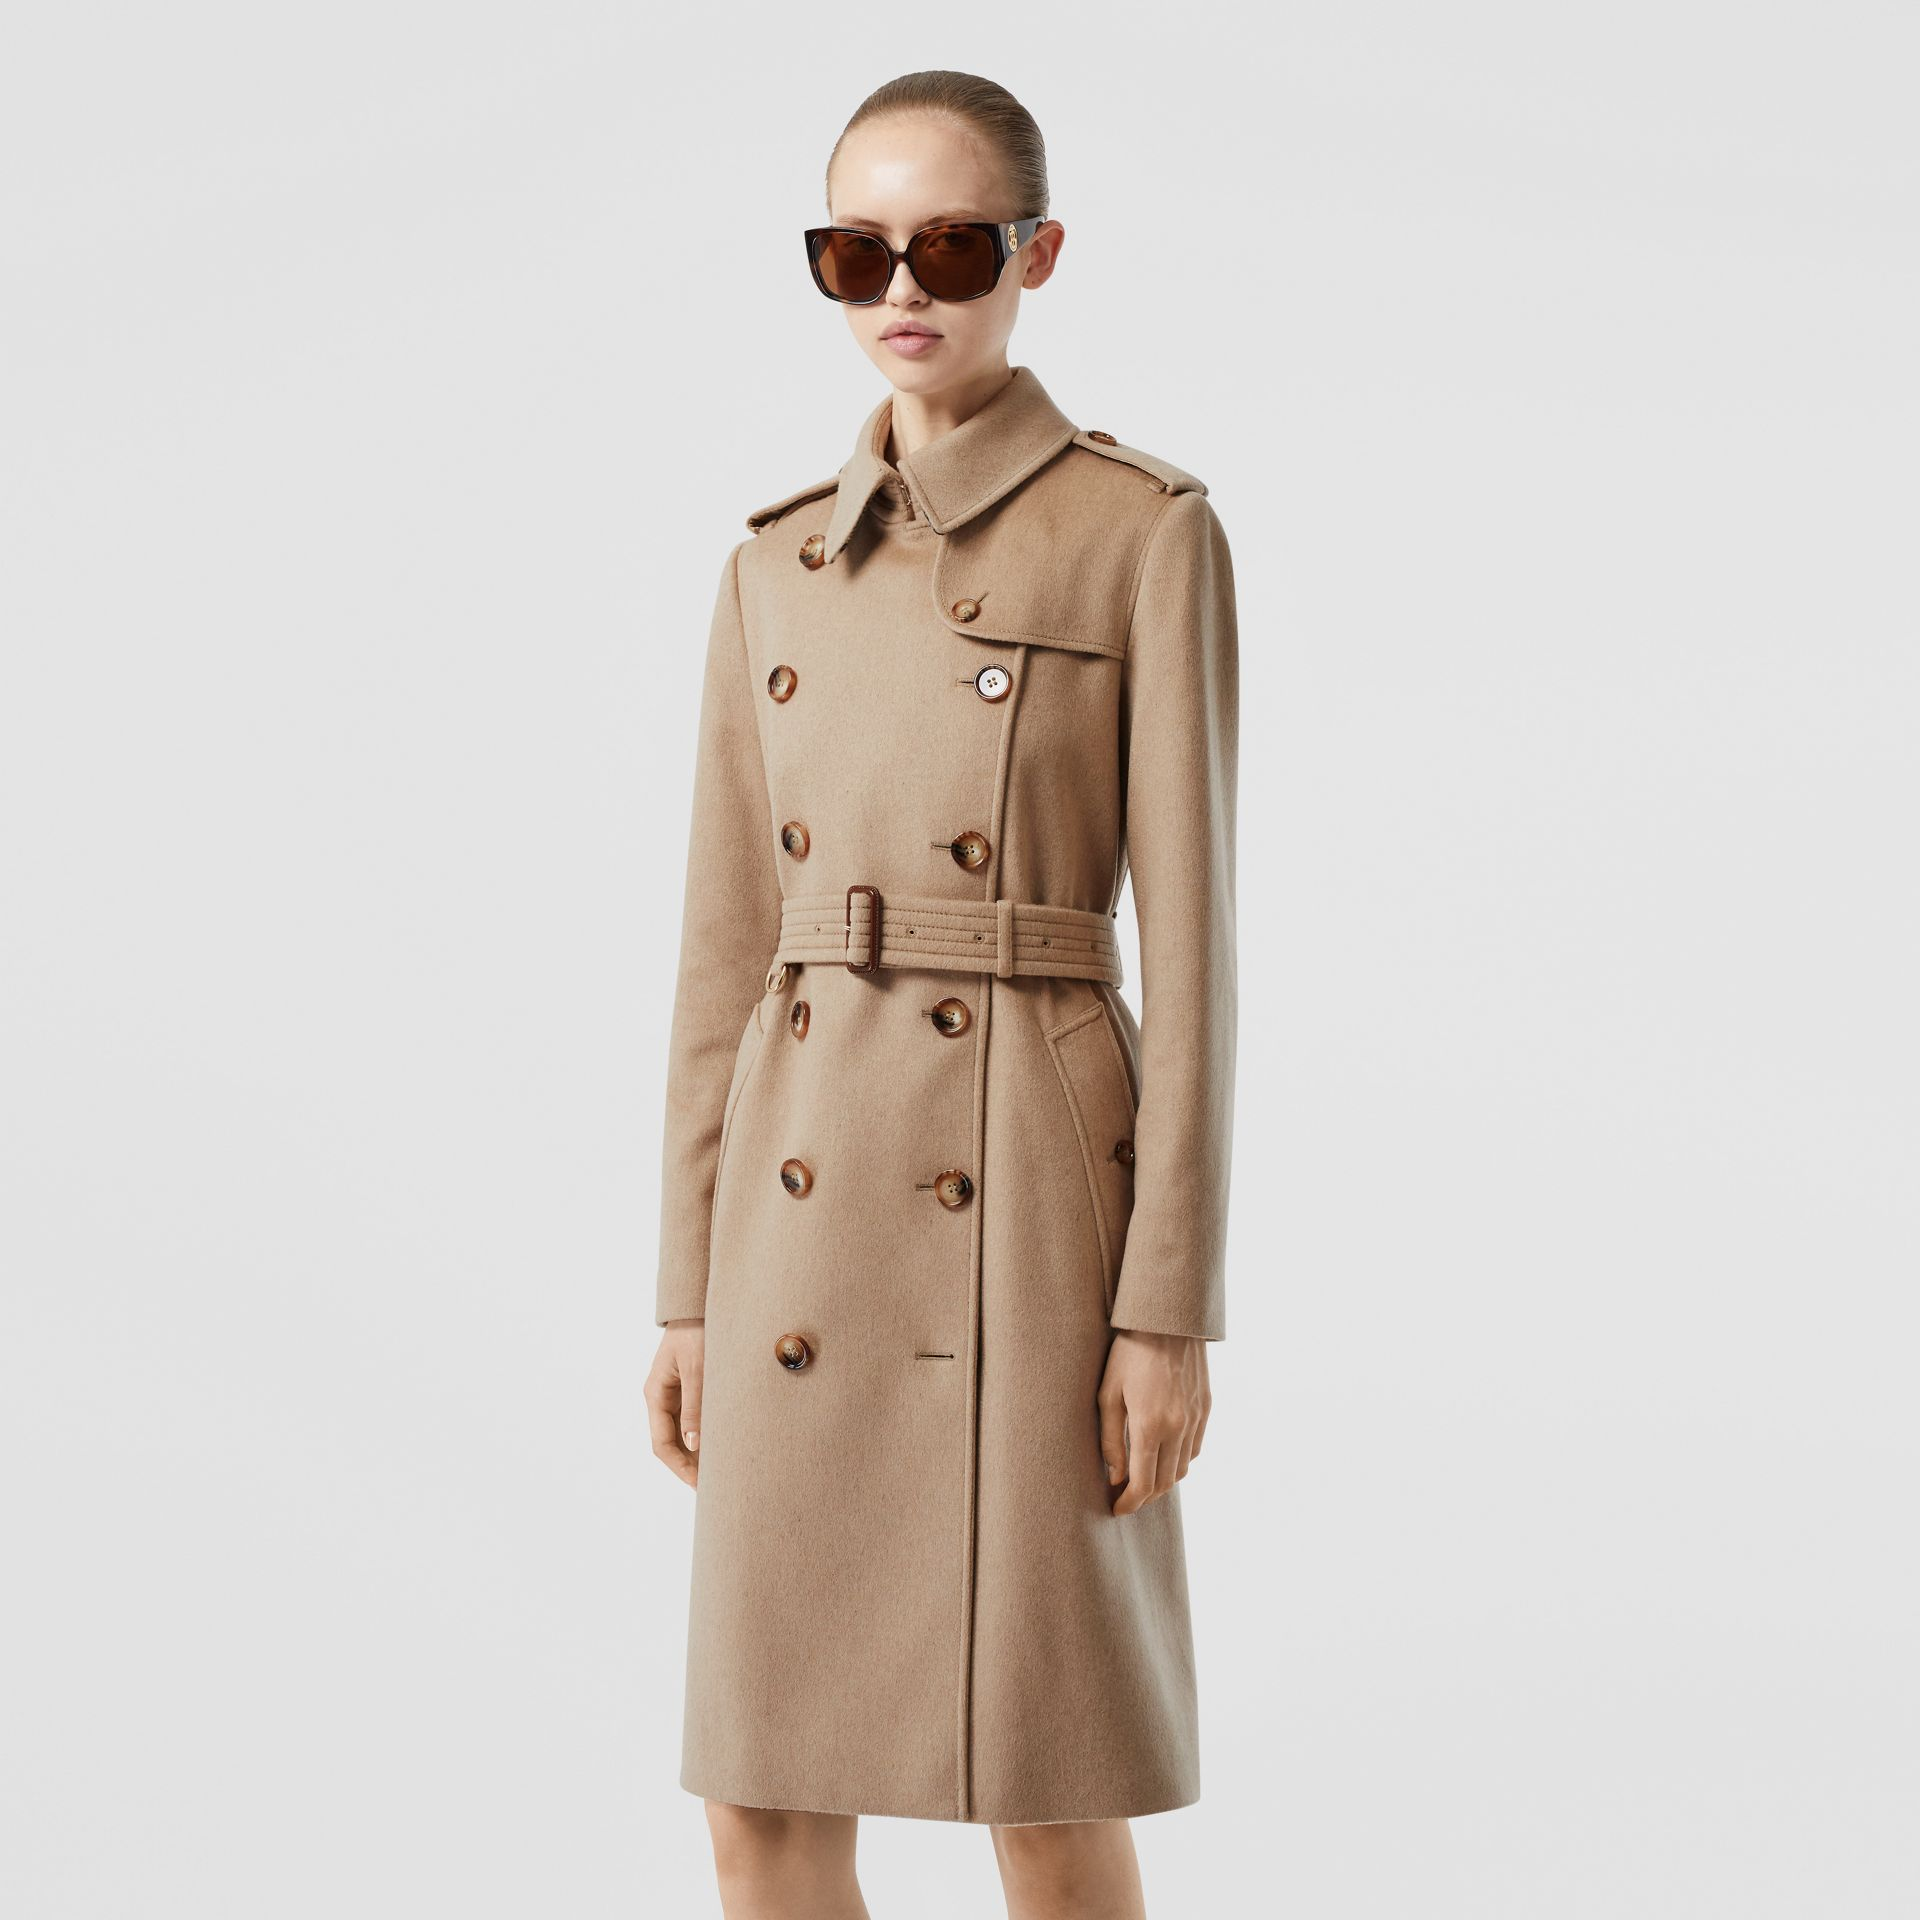 Cashmere Trench Coat in Camel - Women | Burberry United Kingdom - gallery image 6